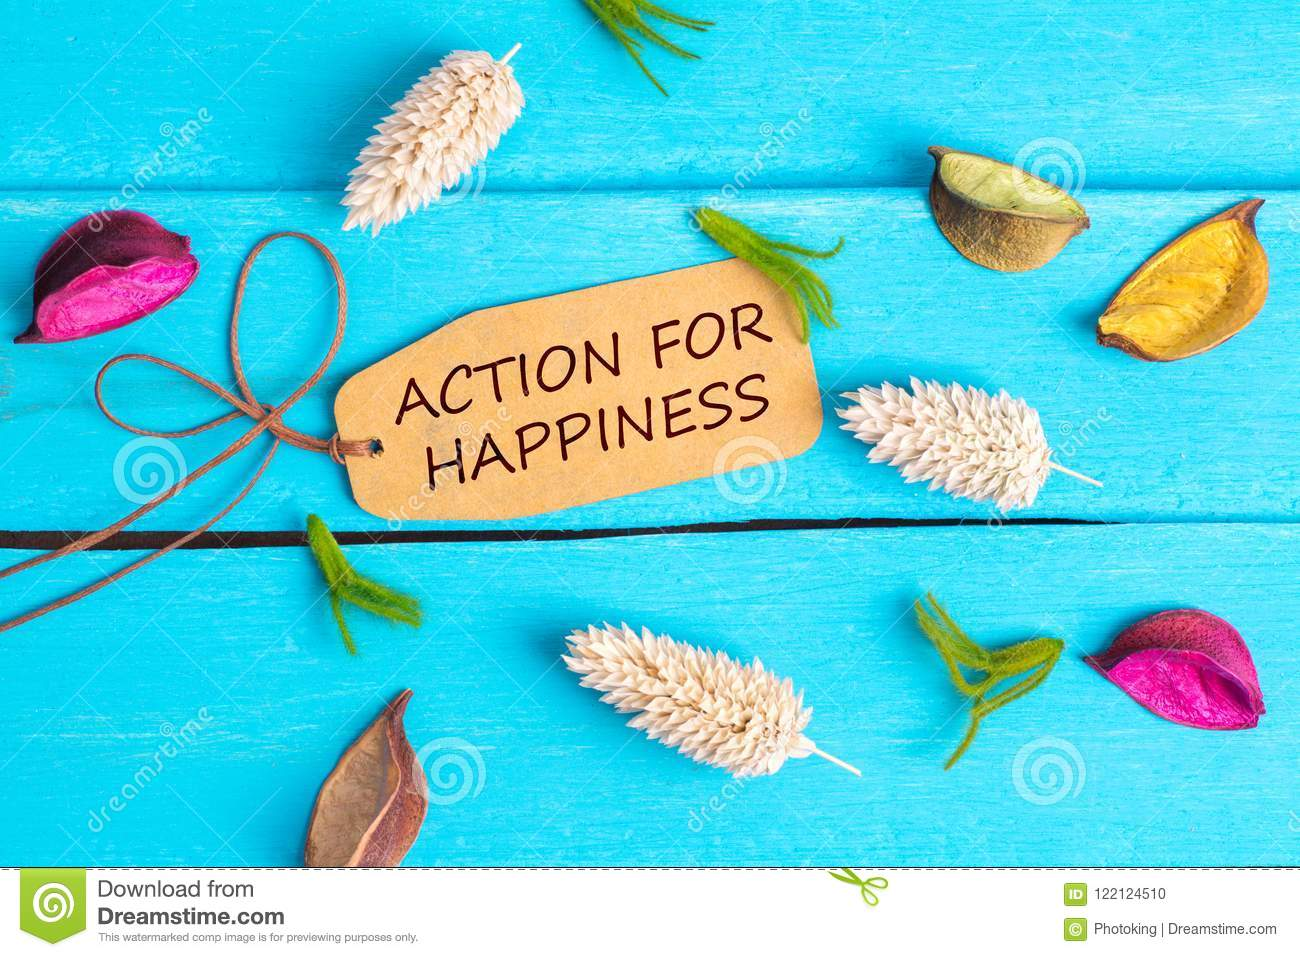 Action for happiness text on paper tag